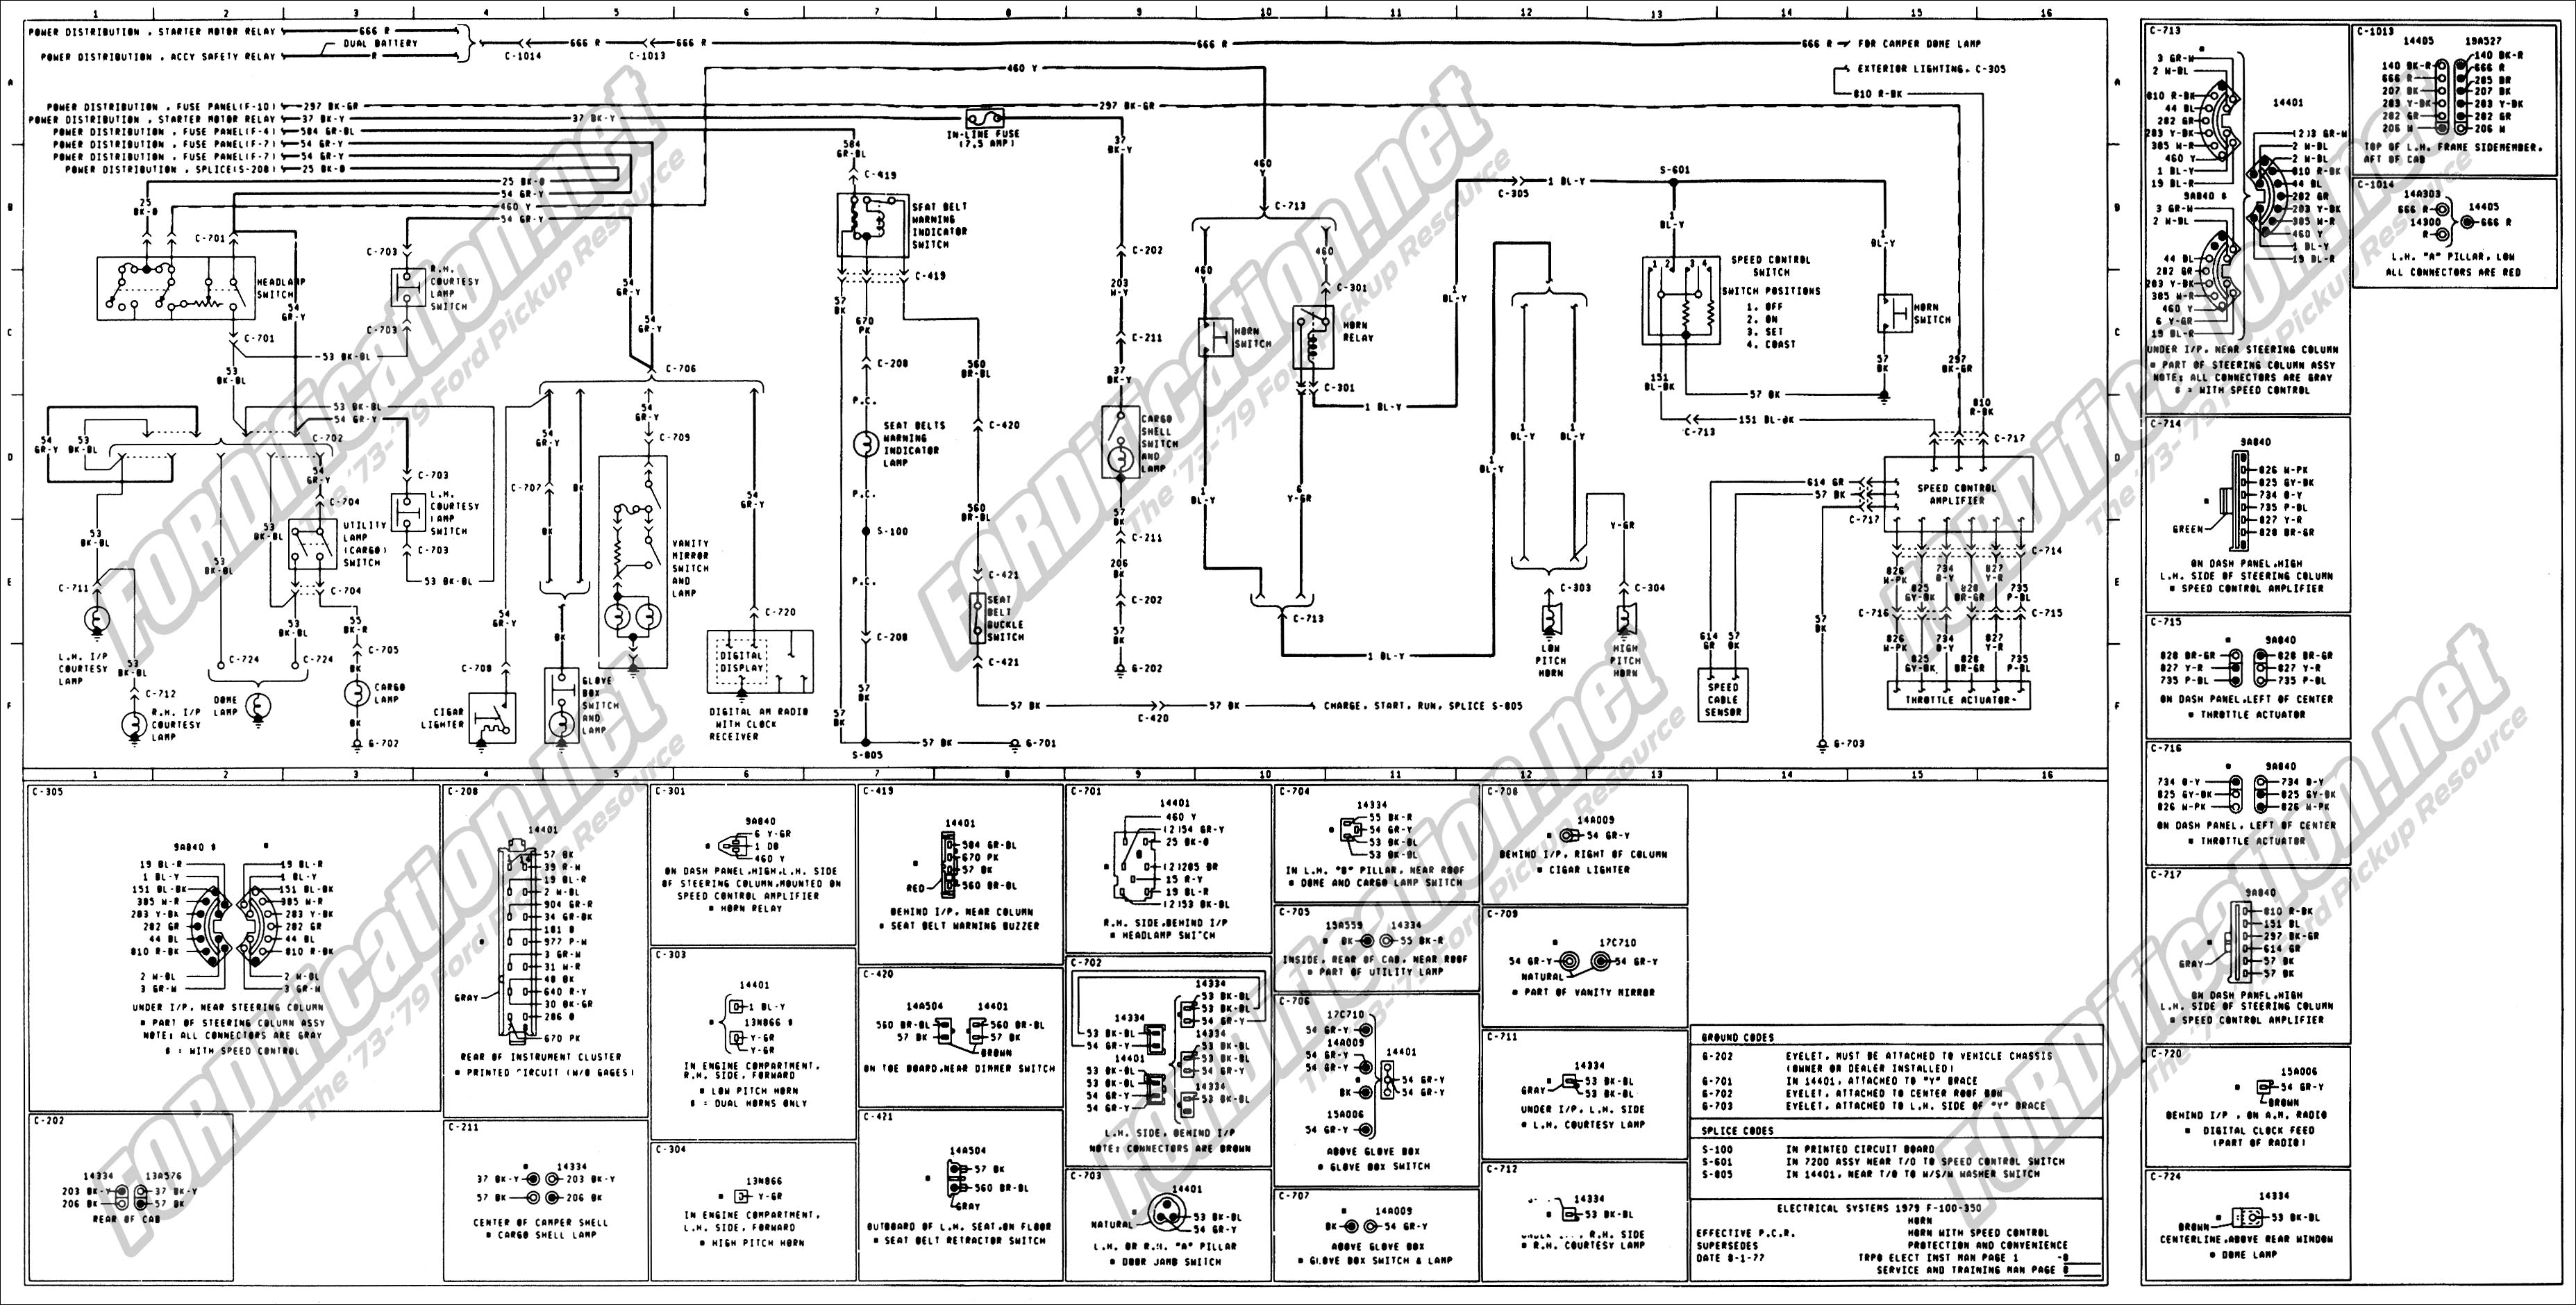 Master Wiring Diagram 68 Mustang Fuse Diagrams Box 1970 Block Schematic For 1979 Bronco Just Data 2011